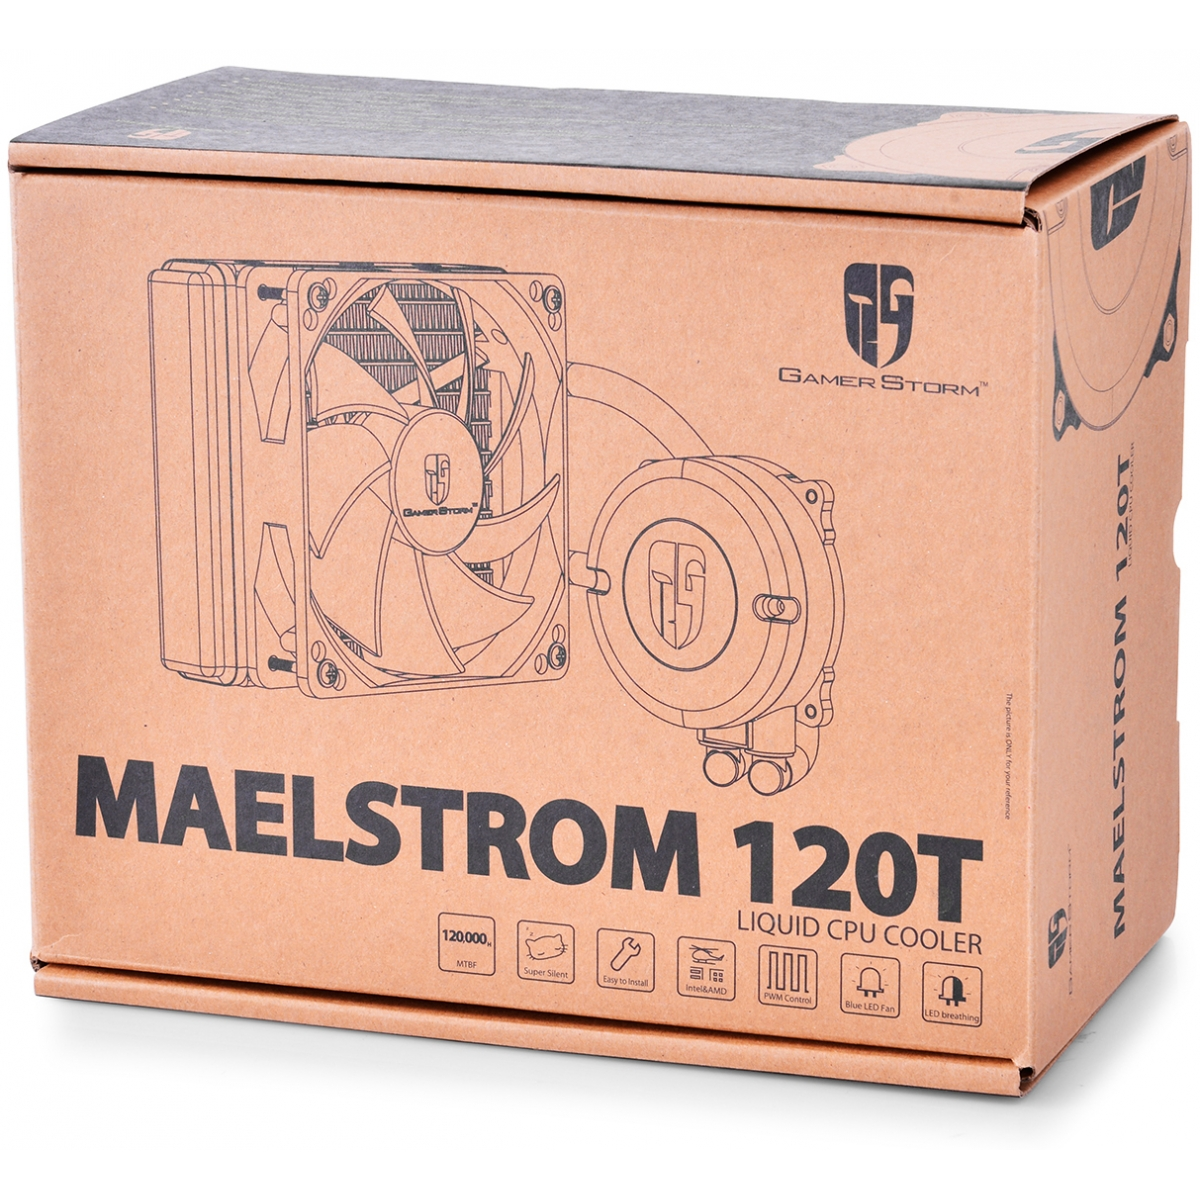 Water Cooler Gamer Storm DeepCool Maelstrom 120T, LED Blue 120mm, Intel-AMD, DP-GS-H12RL-MS120T